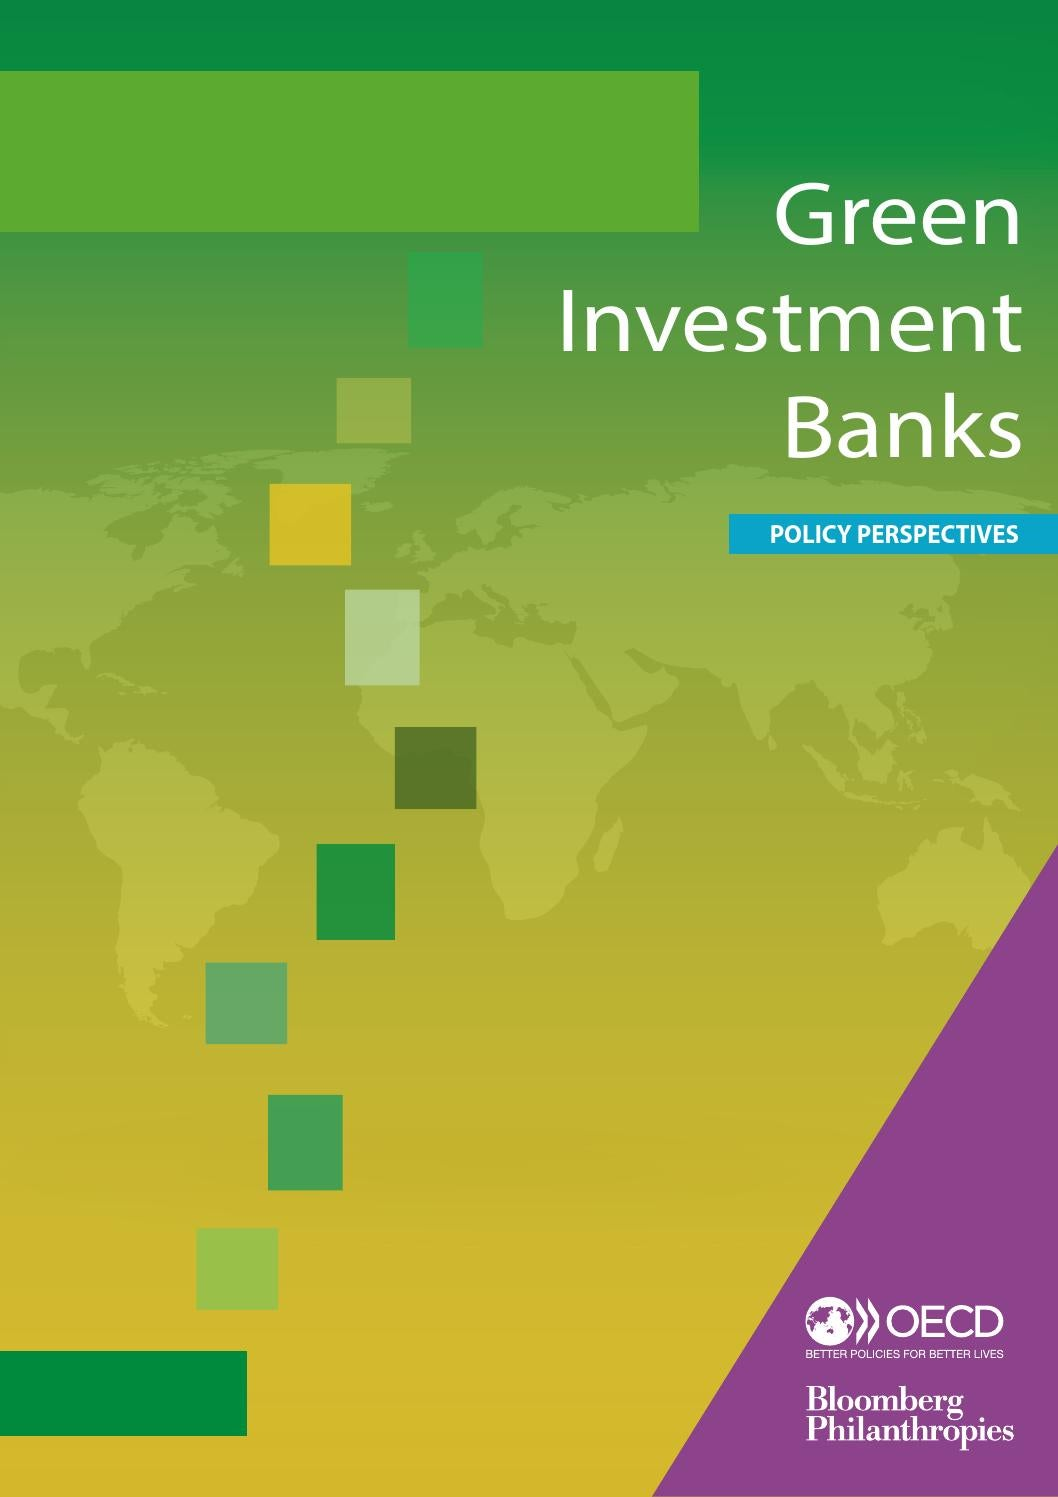 Green Investment Banks Policy Perspectives By Oecd Issuu